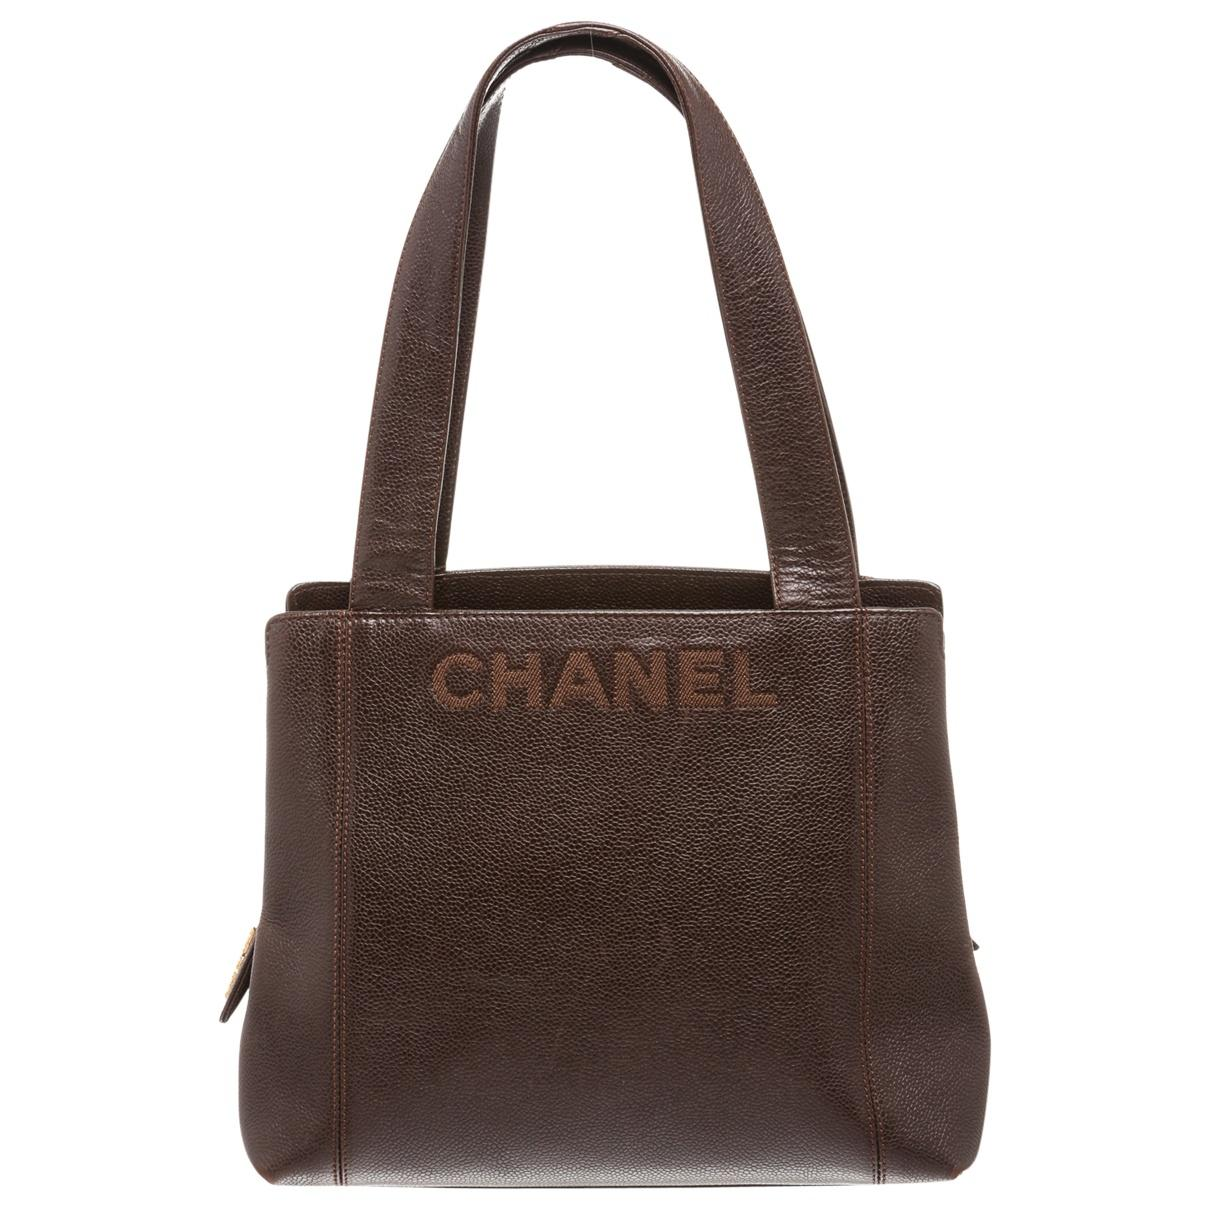 b90d9f063d1a Lyst - Chanel Leather Handbag in Brown